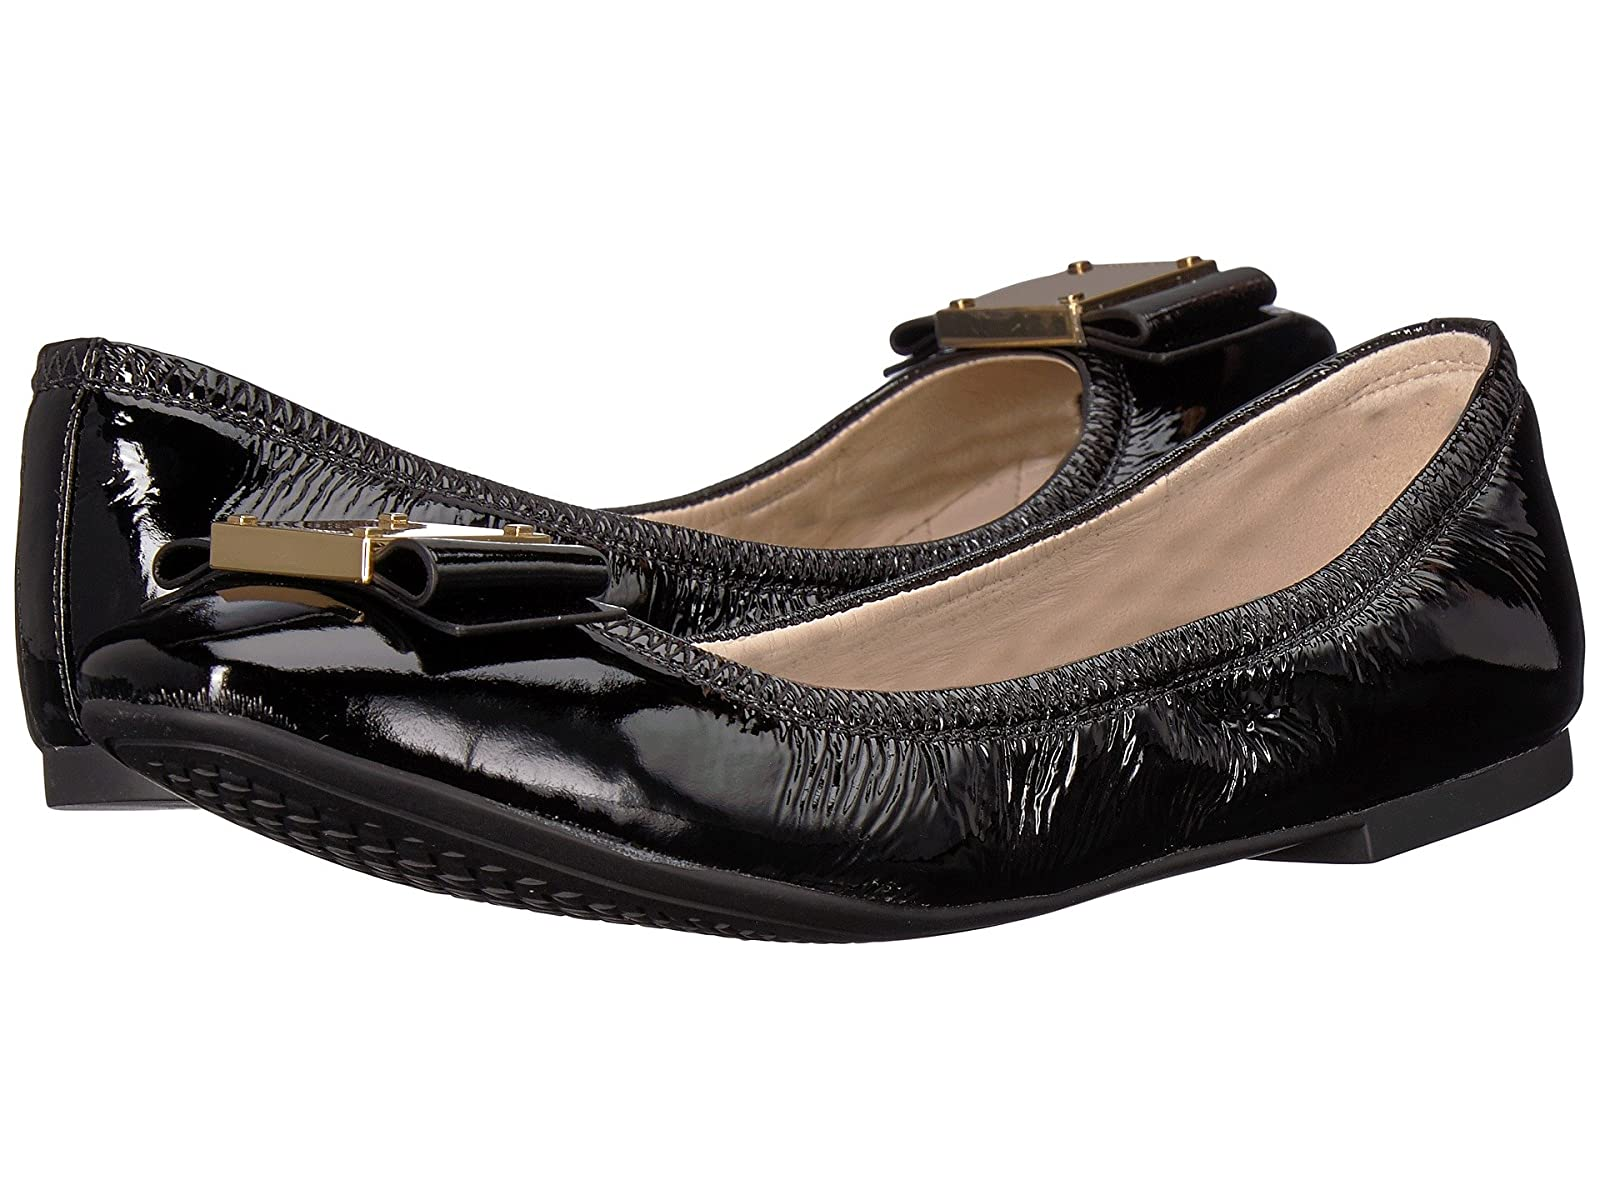 Cole Haan Tali Modern Bow BalletCheap and distinctive eye-catching shoes